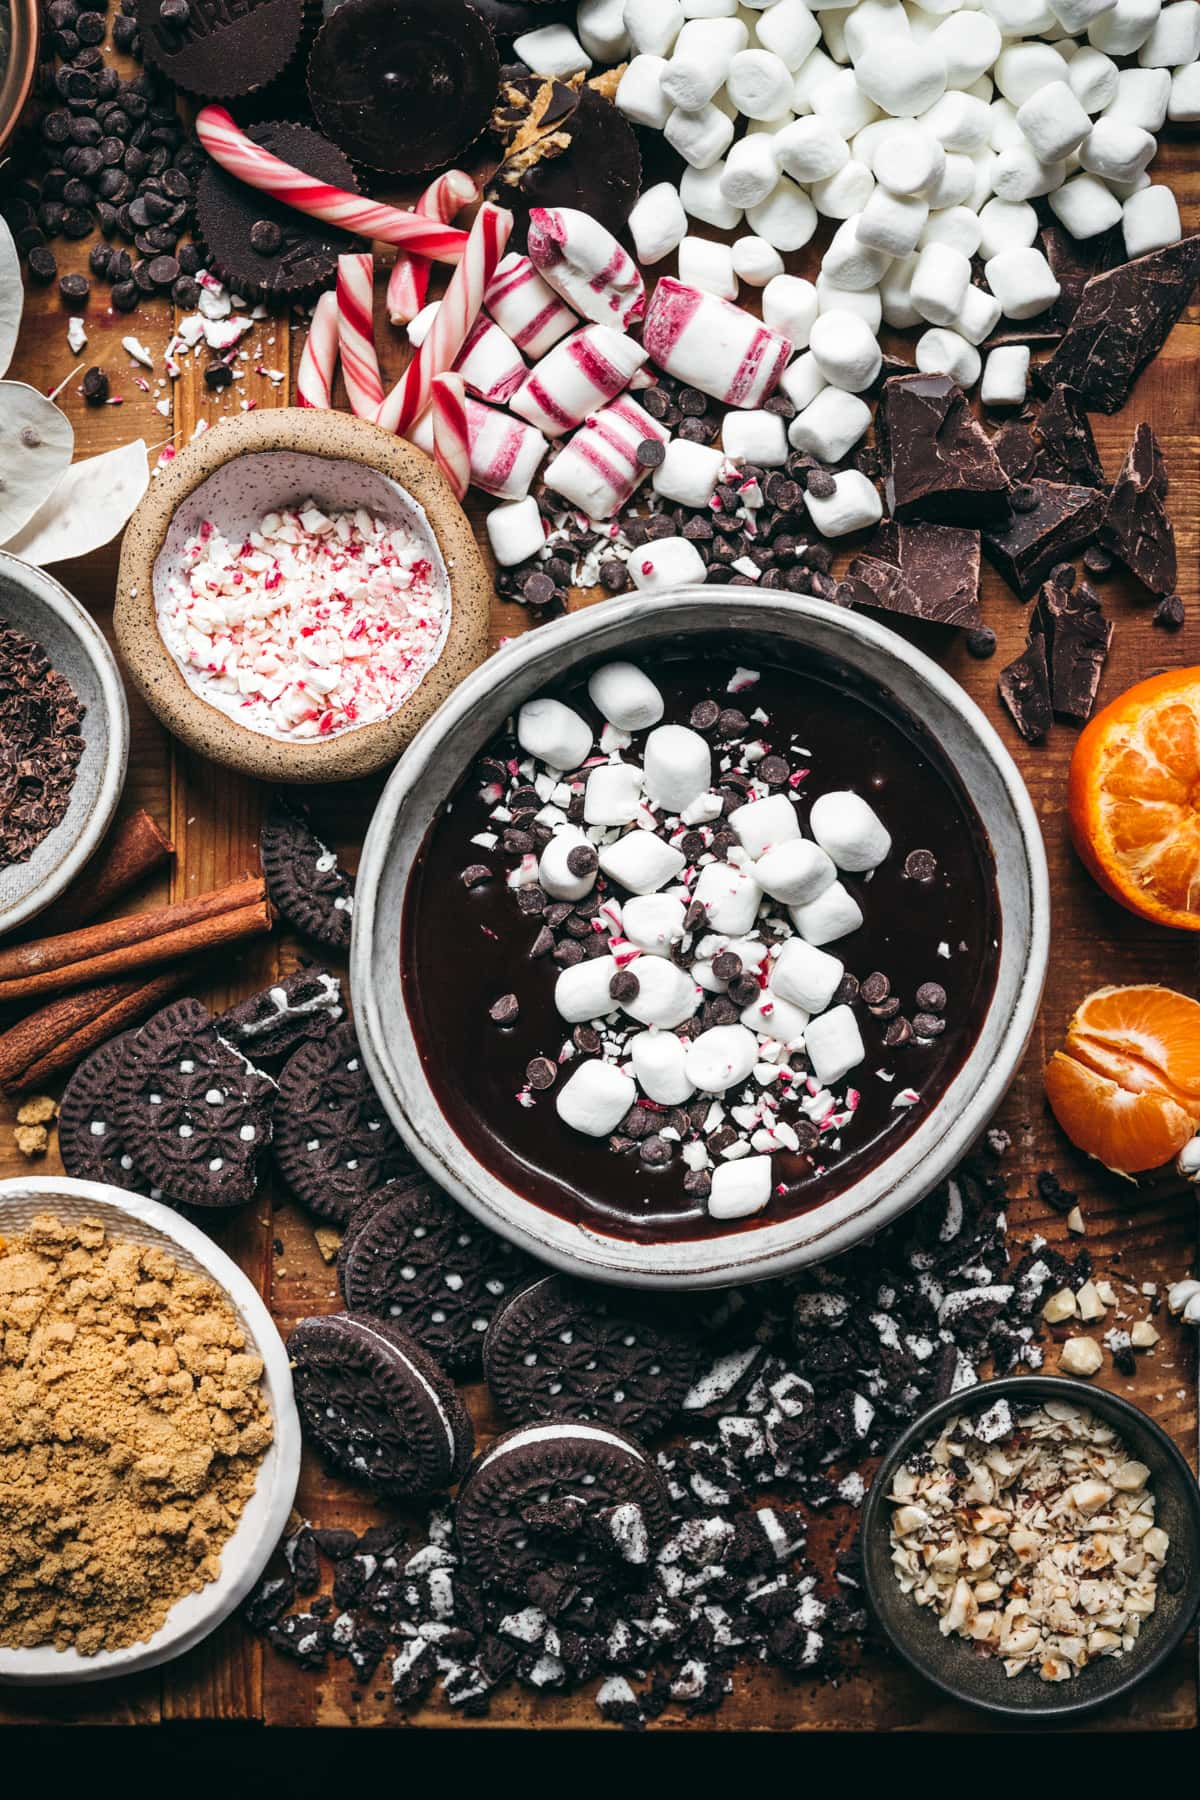 overhead view of hot cocoa board with lots of toppings like chocolate, marshmallows, peppermint, cookies, etc.